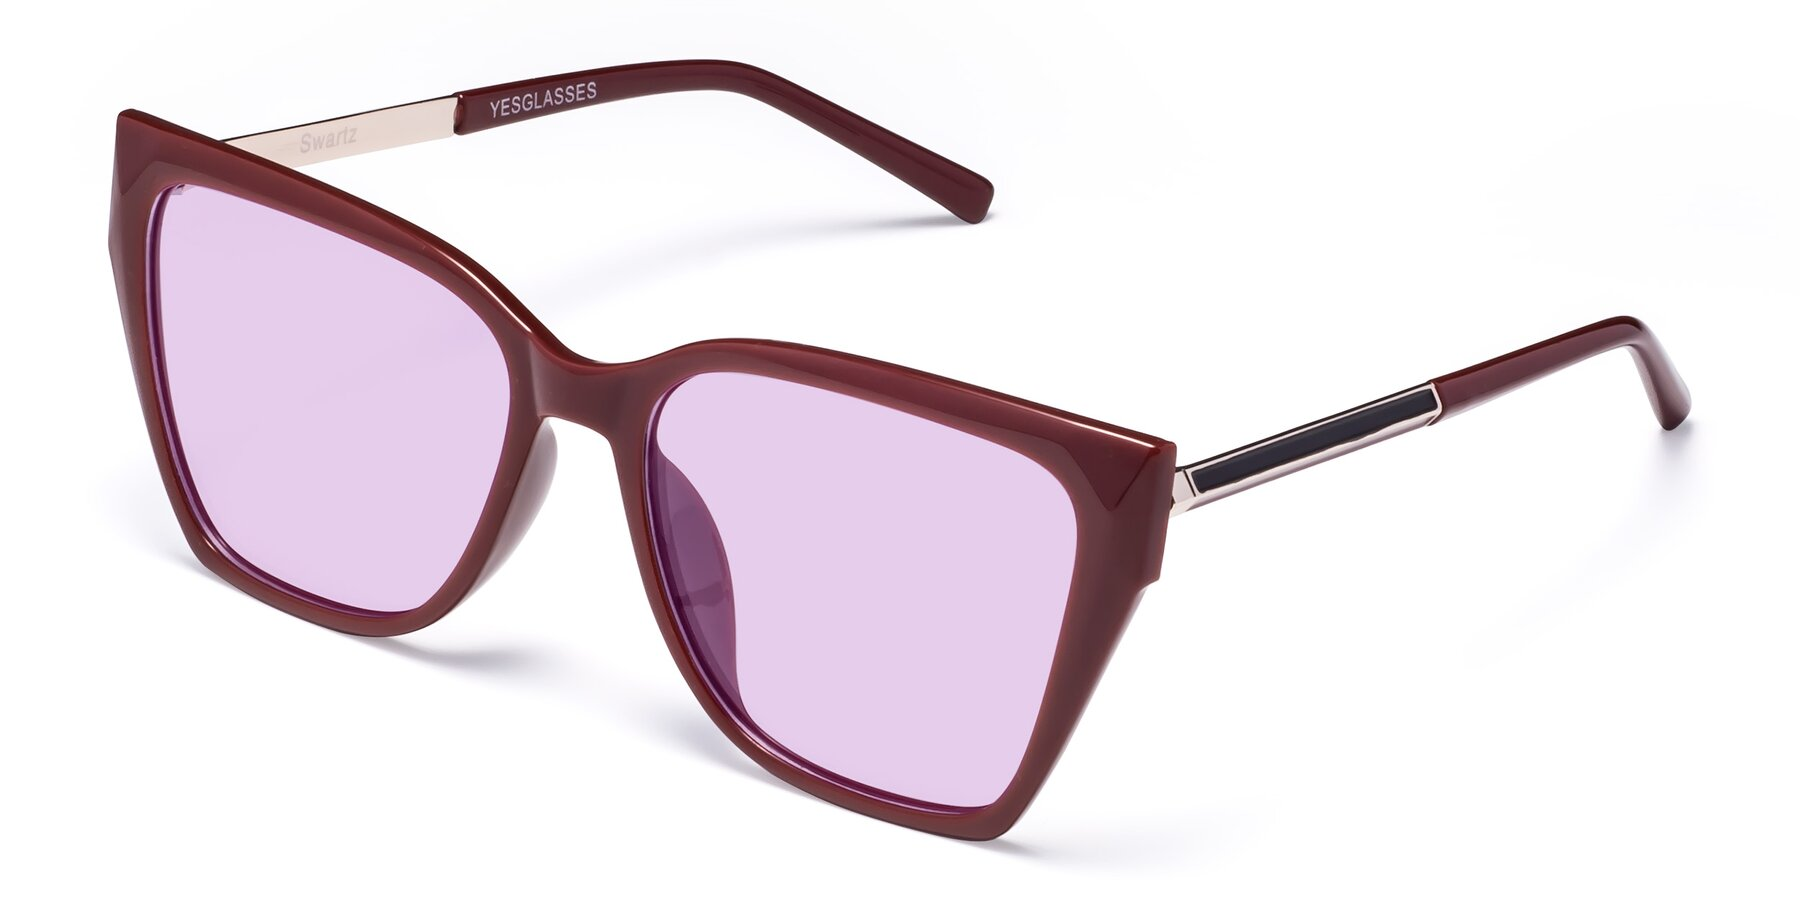 Angle of Swartz in Wine with Light Purple Tinted Lenses